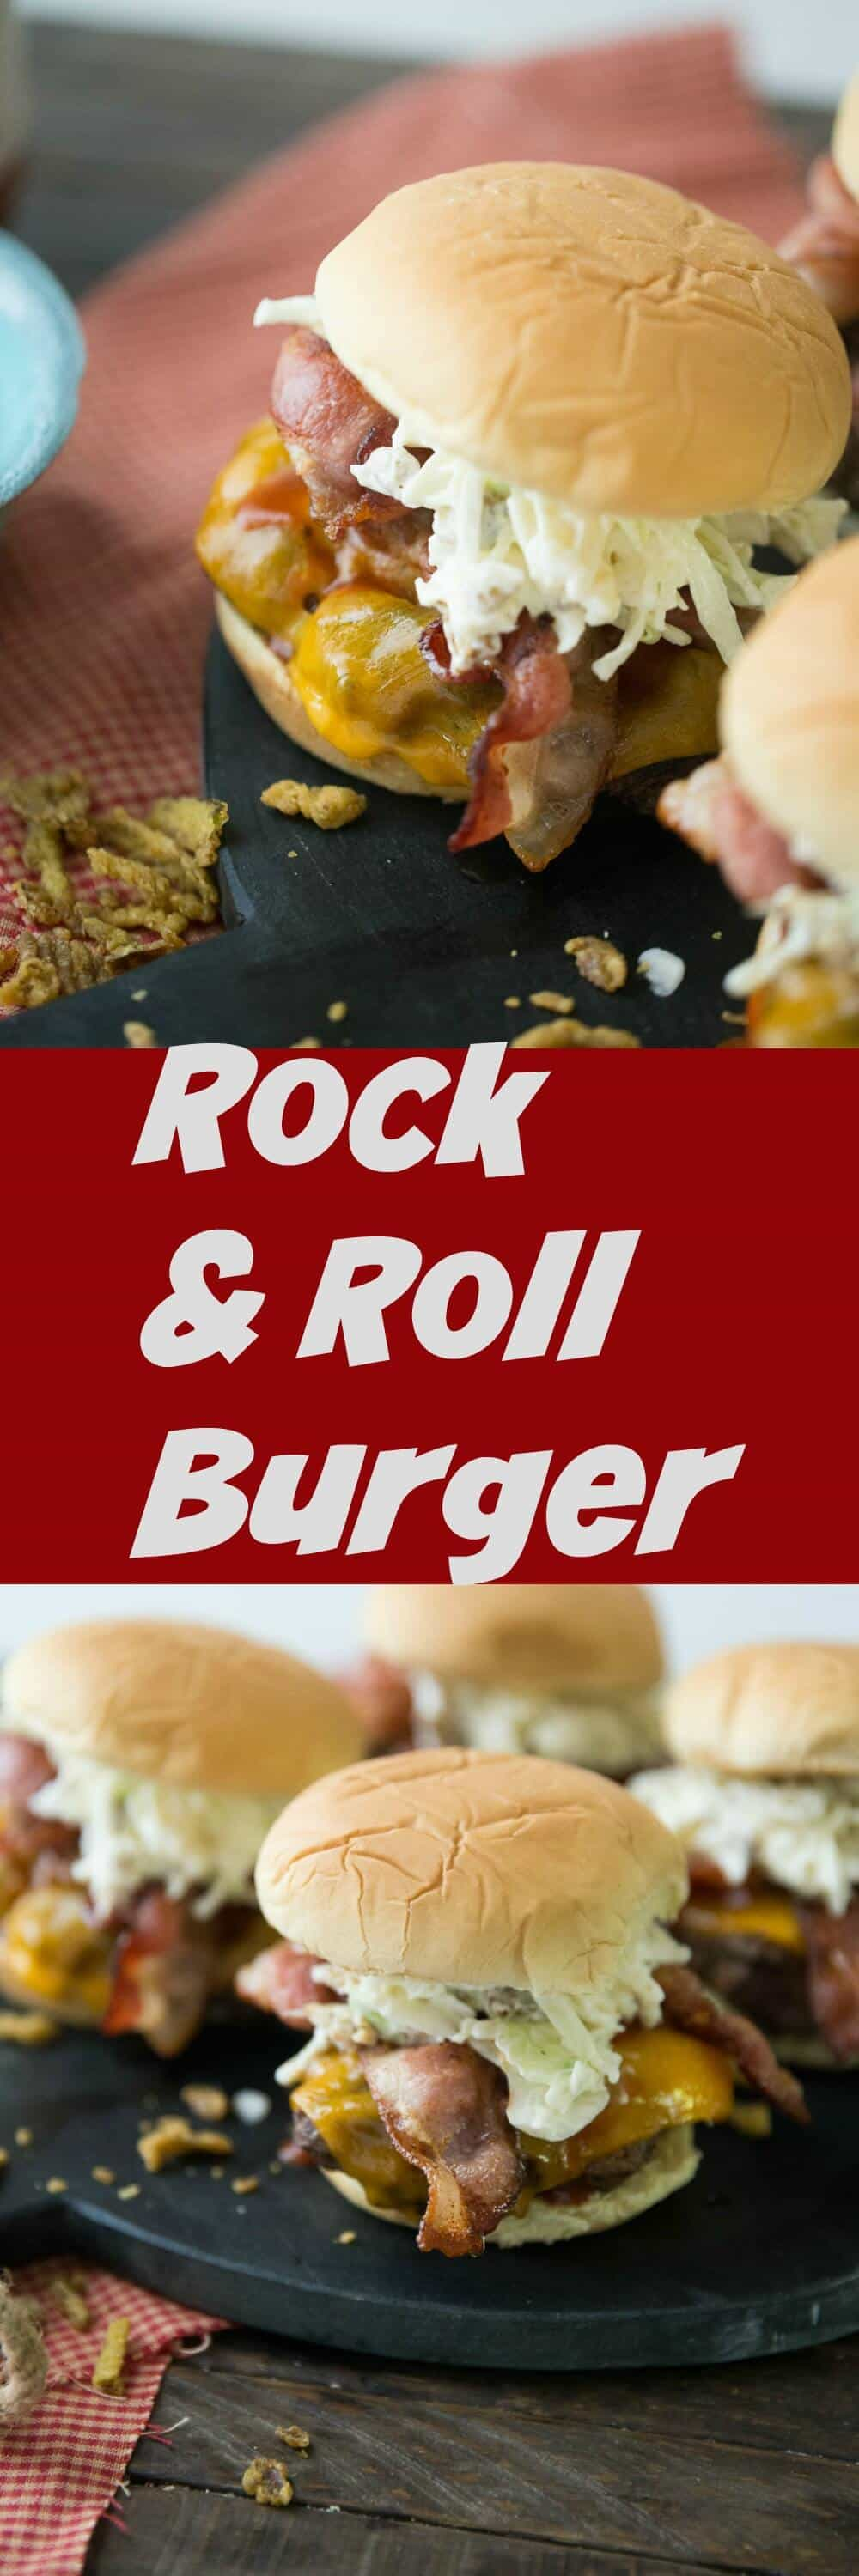 This rock and roll burger is a little classic and a little crazy, which fits the description! This burger is going to knock your sock off!